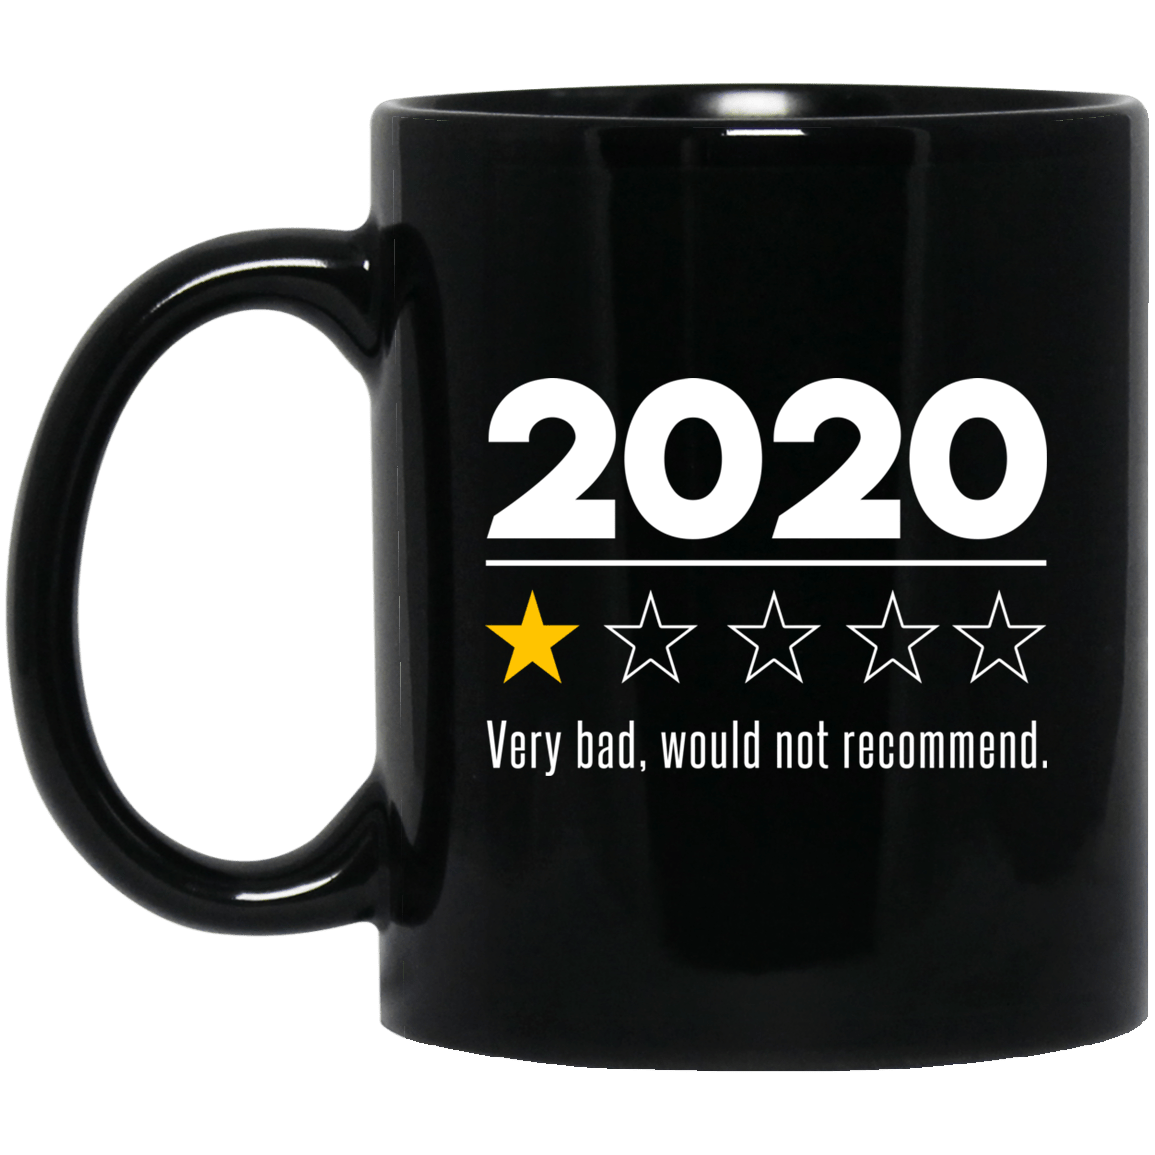 2020 This Year Very Bad Would Not Recommend Mug 1065-10181-88282976-49307 - Tee Ript